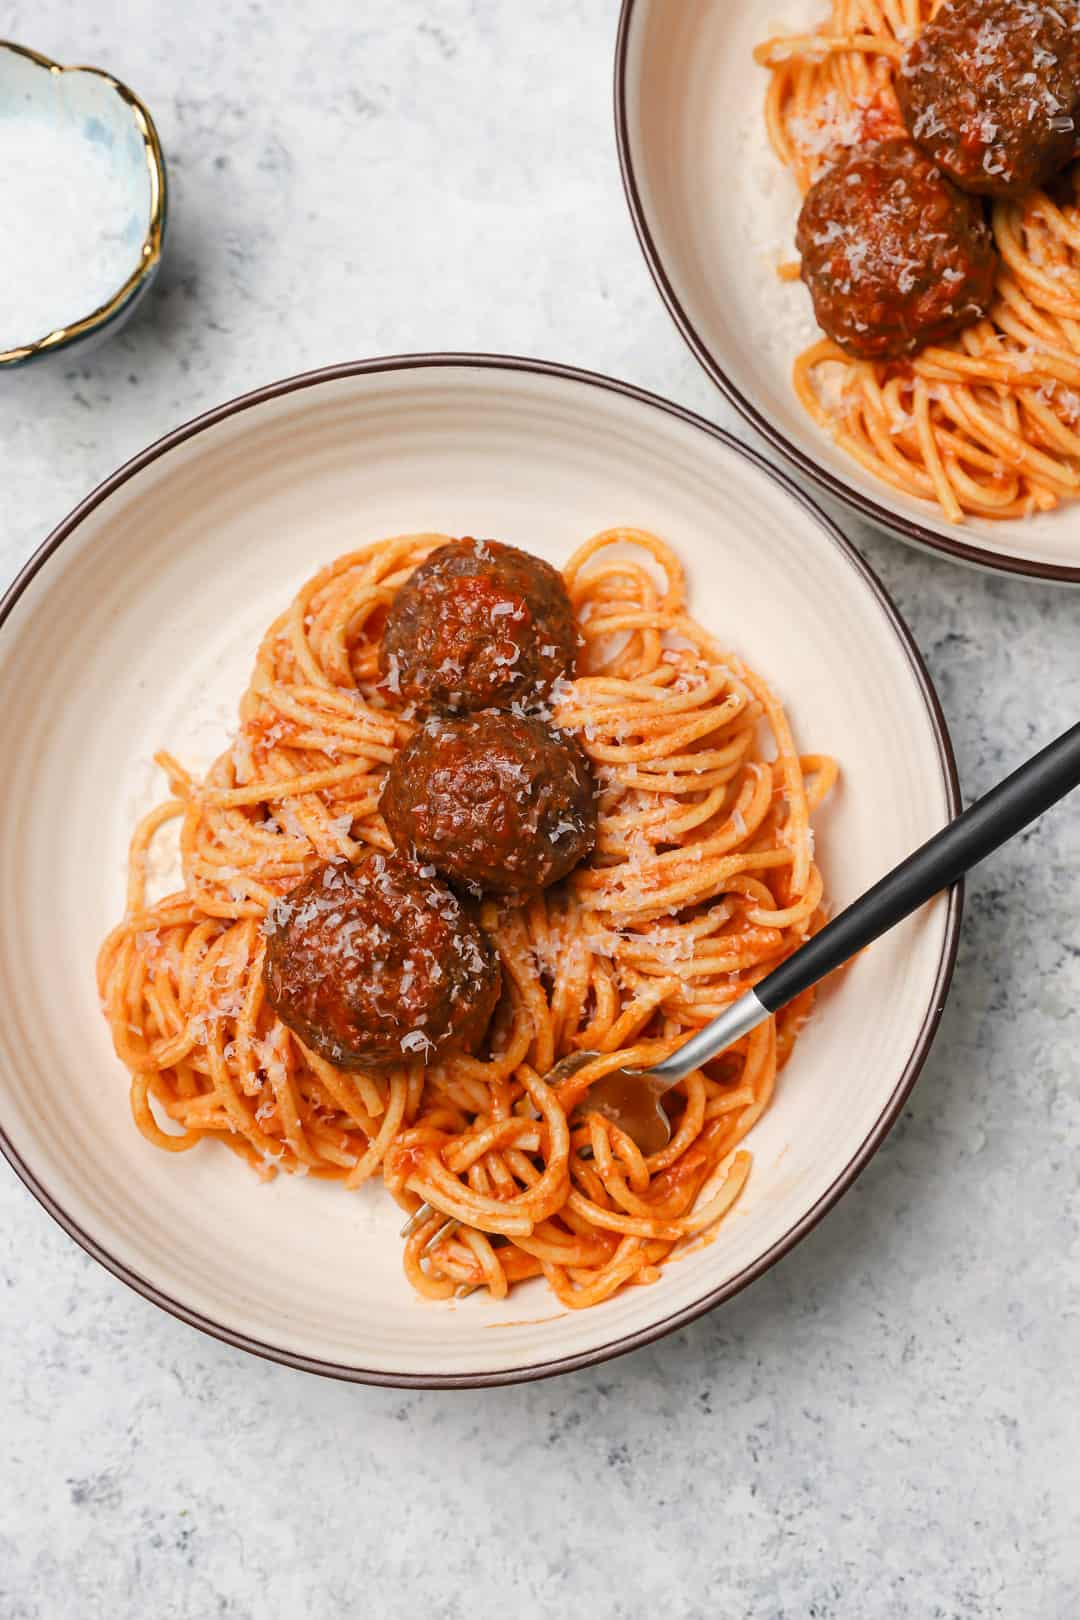 Classic homemade meatballs and spaghetti in a bowl